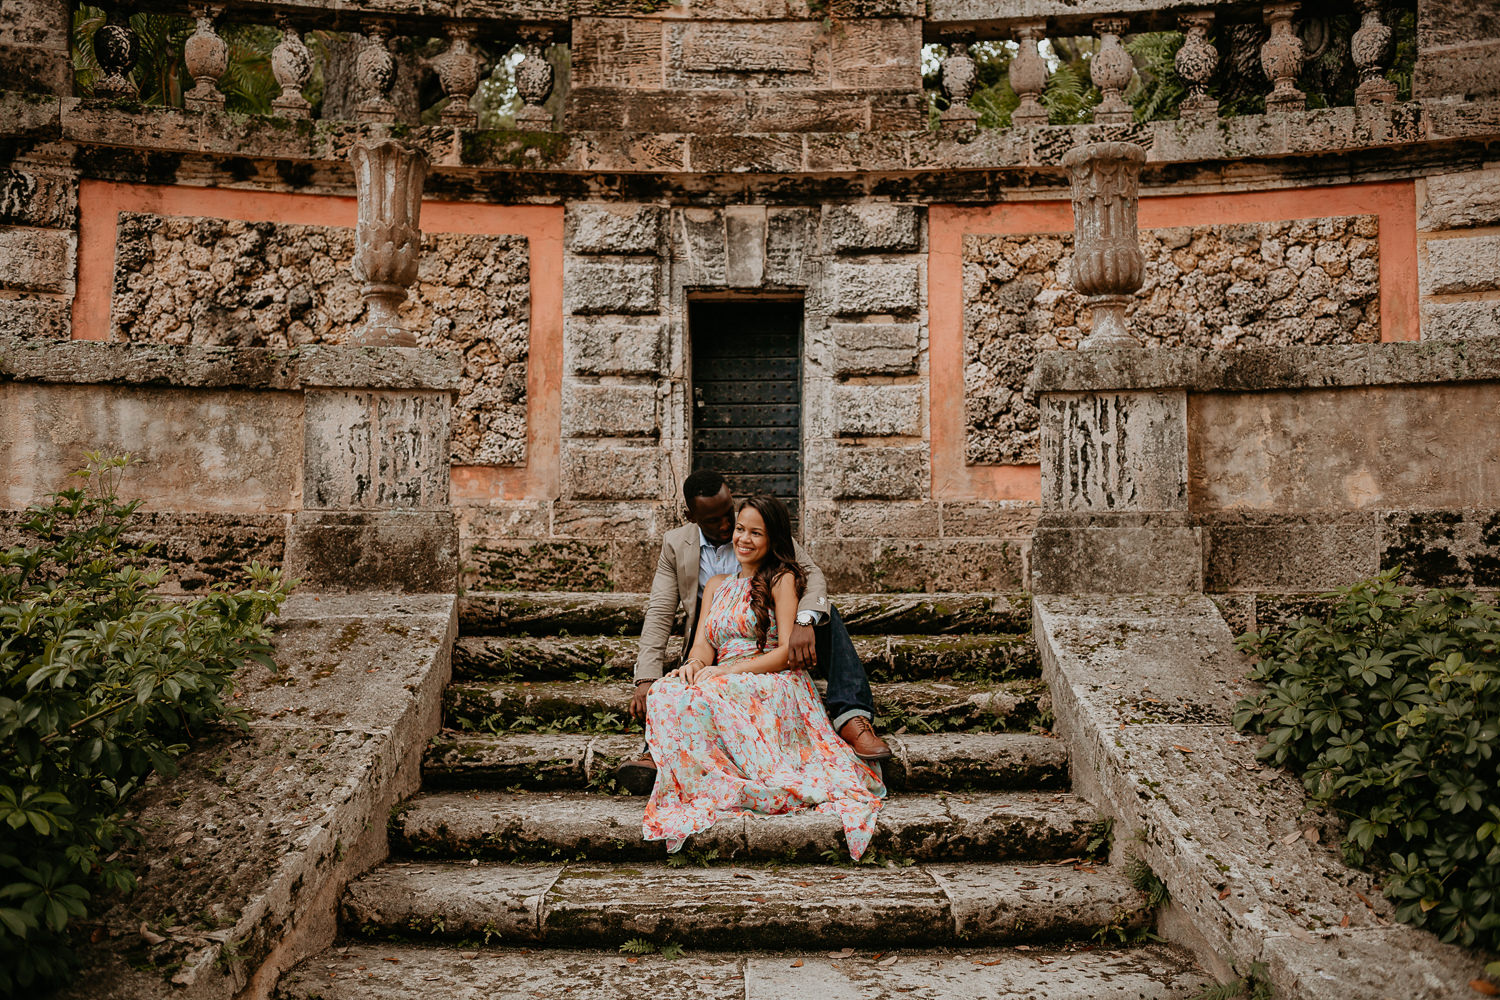 engaged couple sitting on stone steps and stone wall